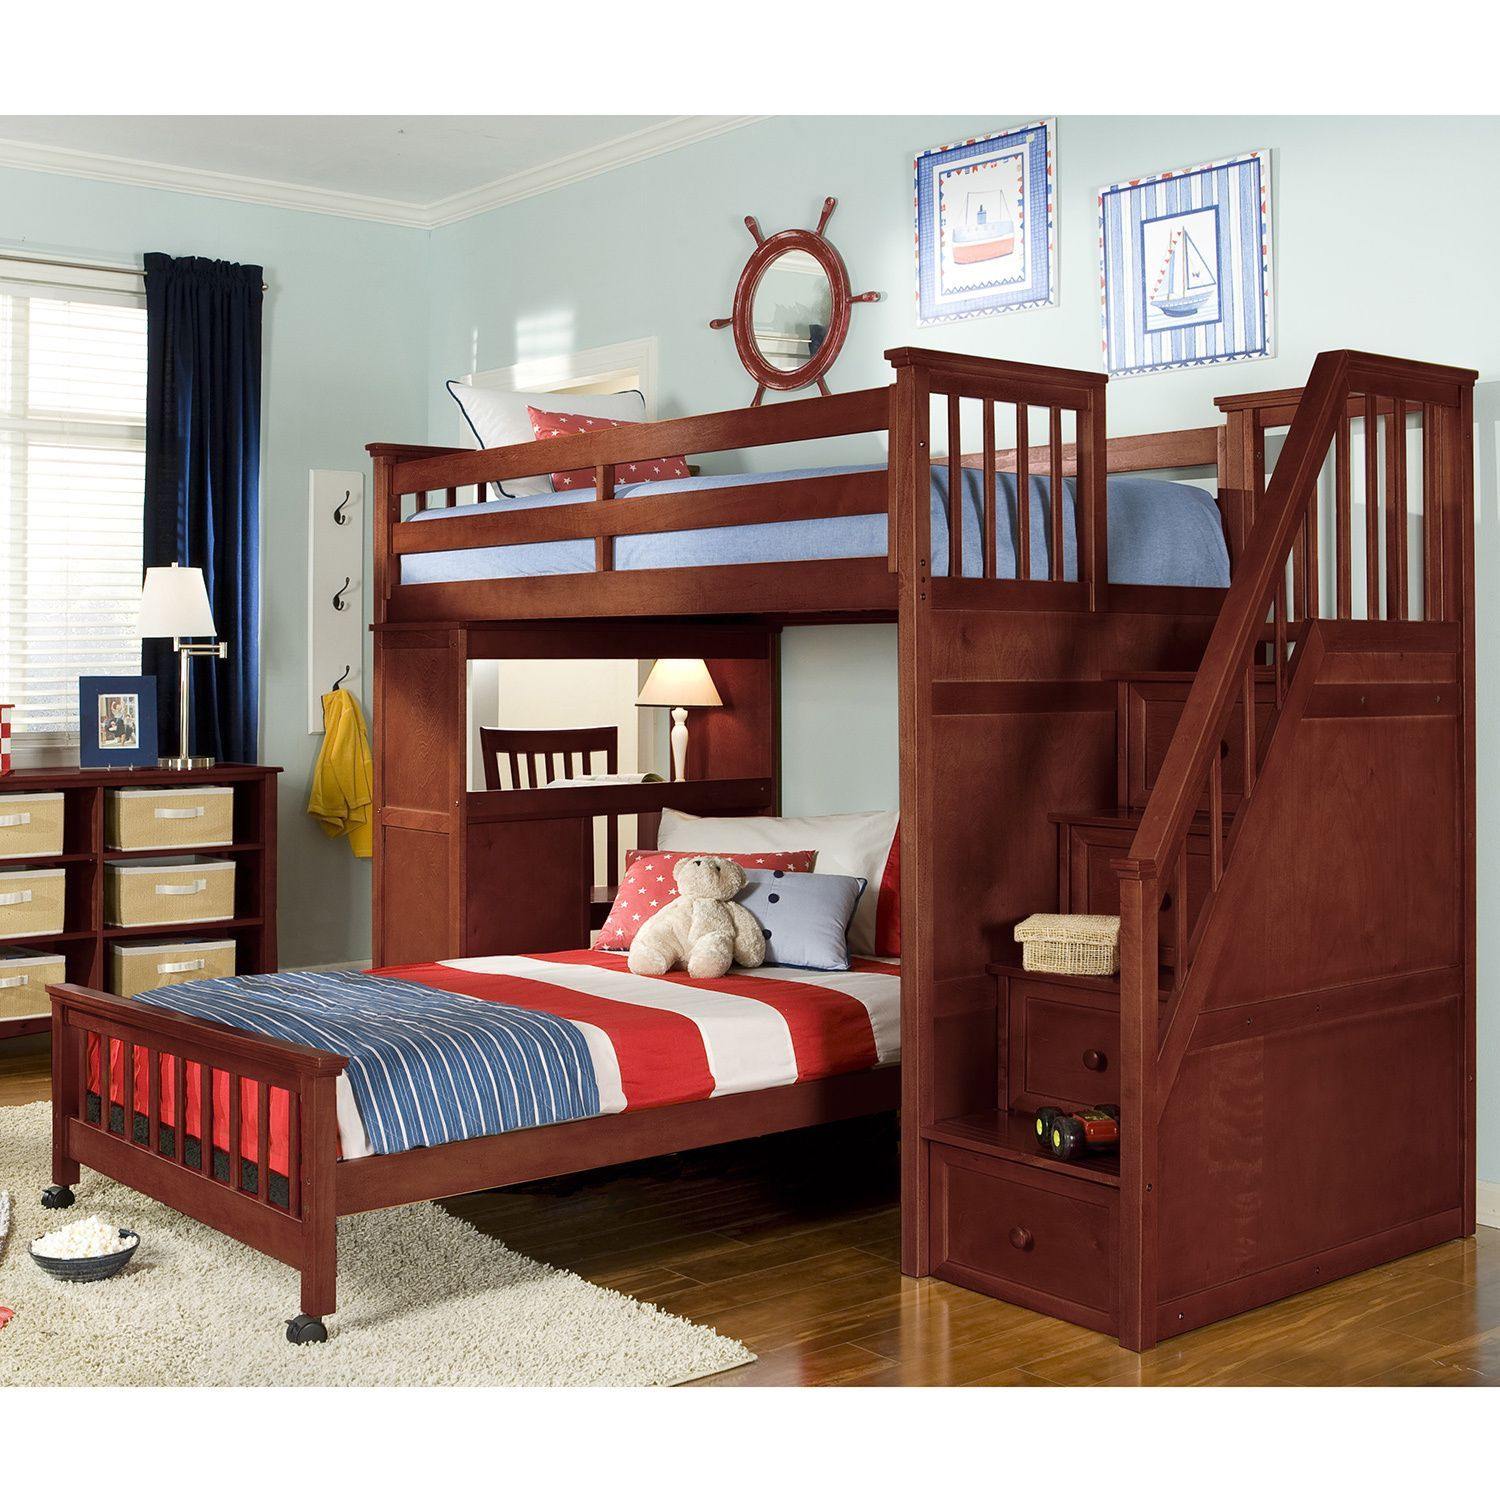 Loft bed with desk full size mattress  NE Kids School House Cherry Stair Loft Desk End Twin Bed Stair Loft